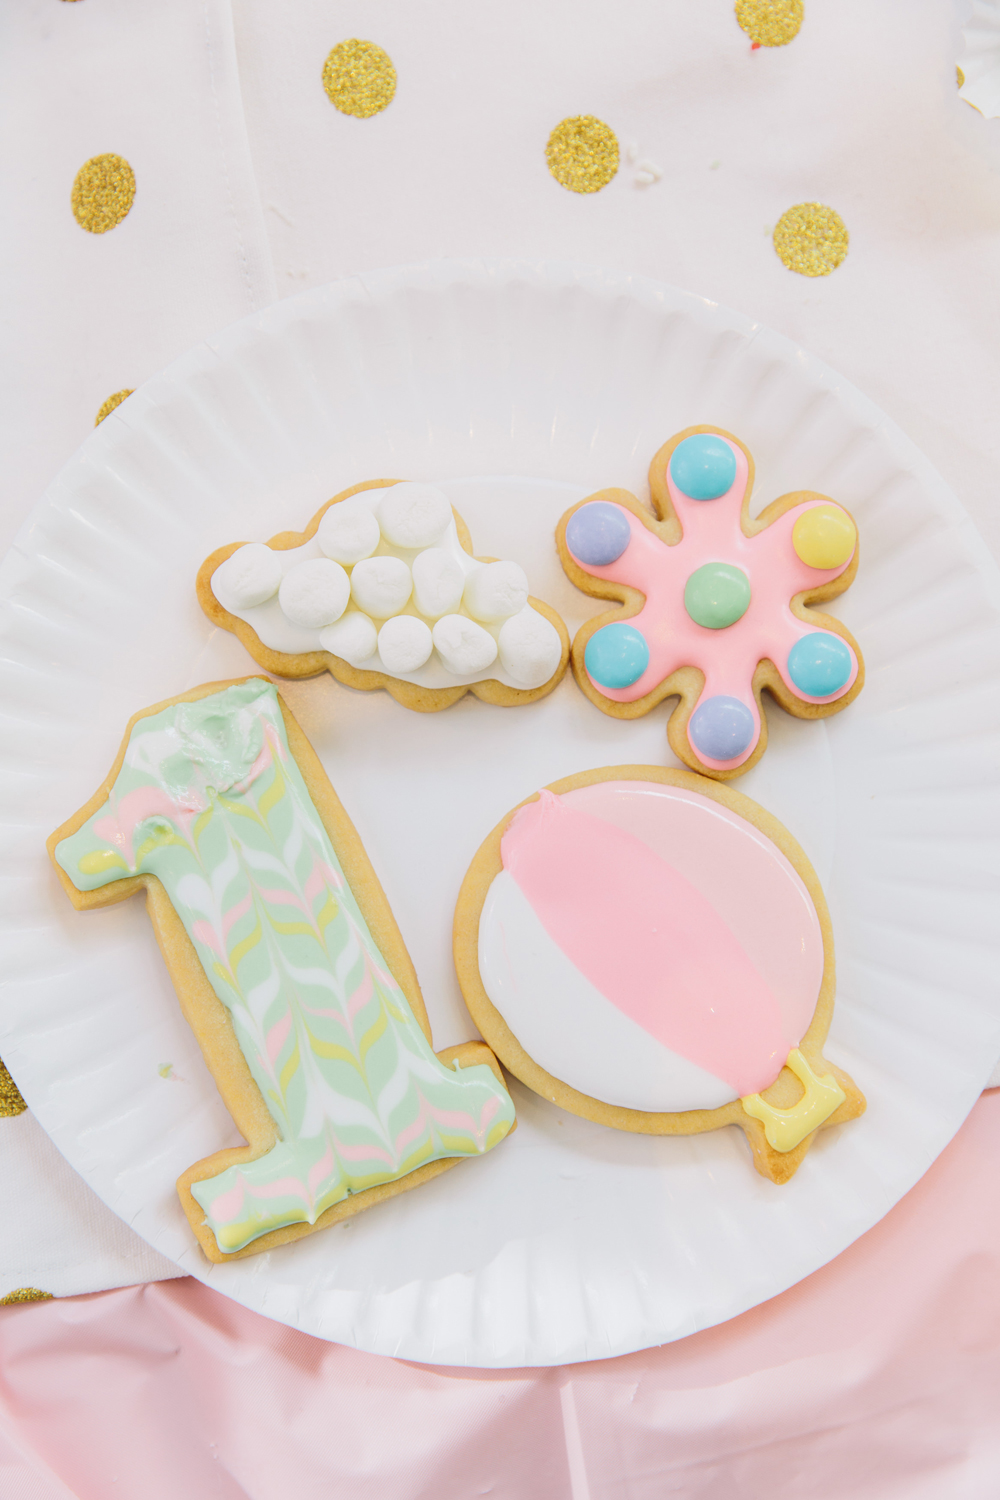 Cookie Decorating Activity